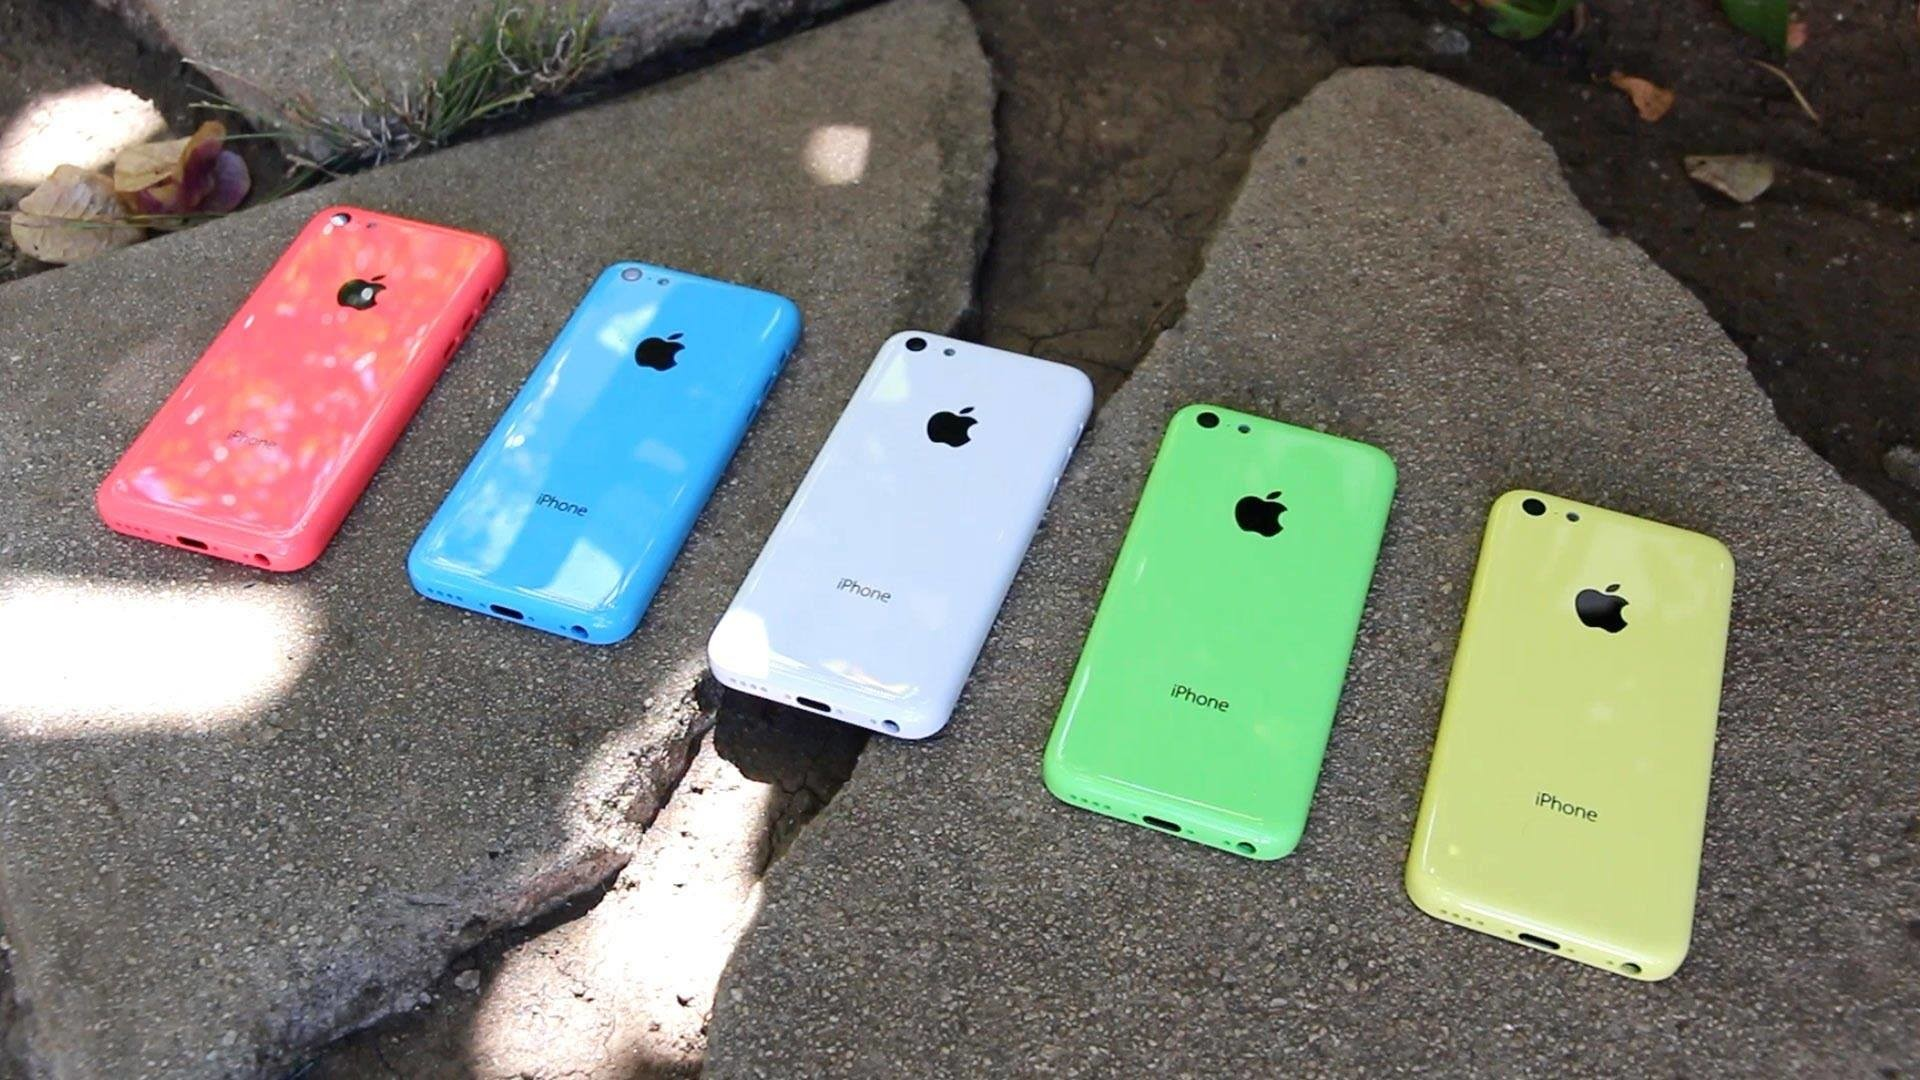 … wallpapers now; apple iphone 5c emerged for less on european market  guardian …